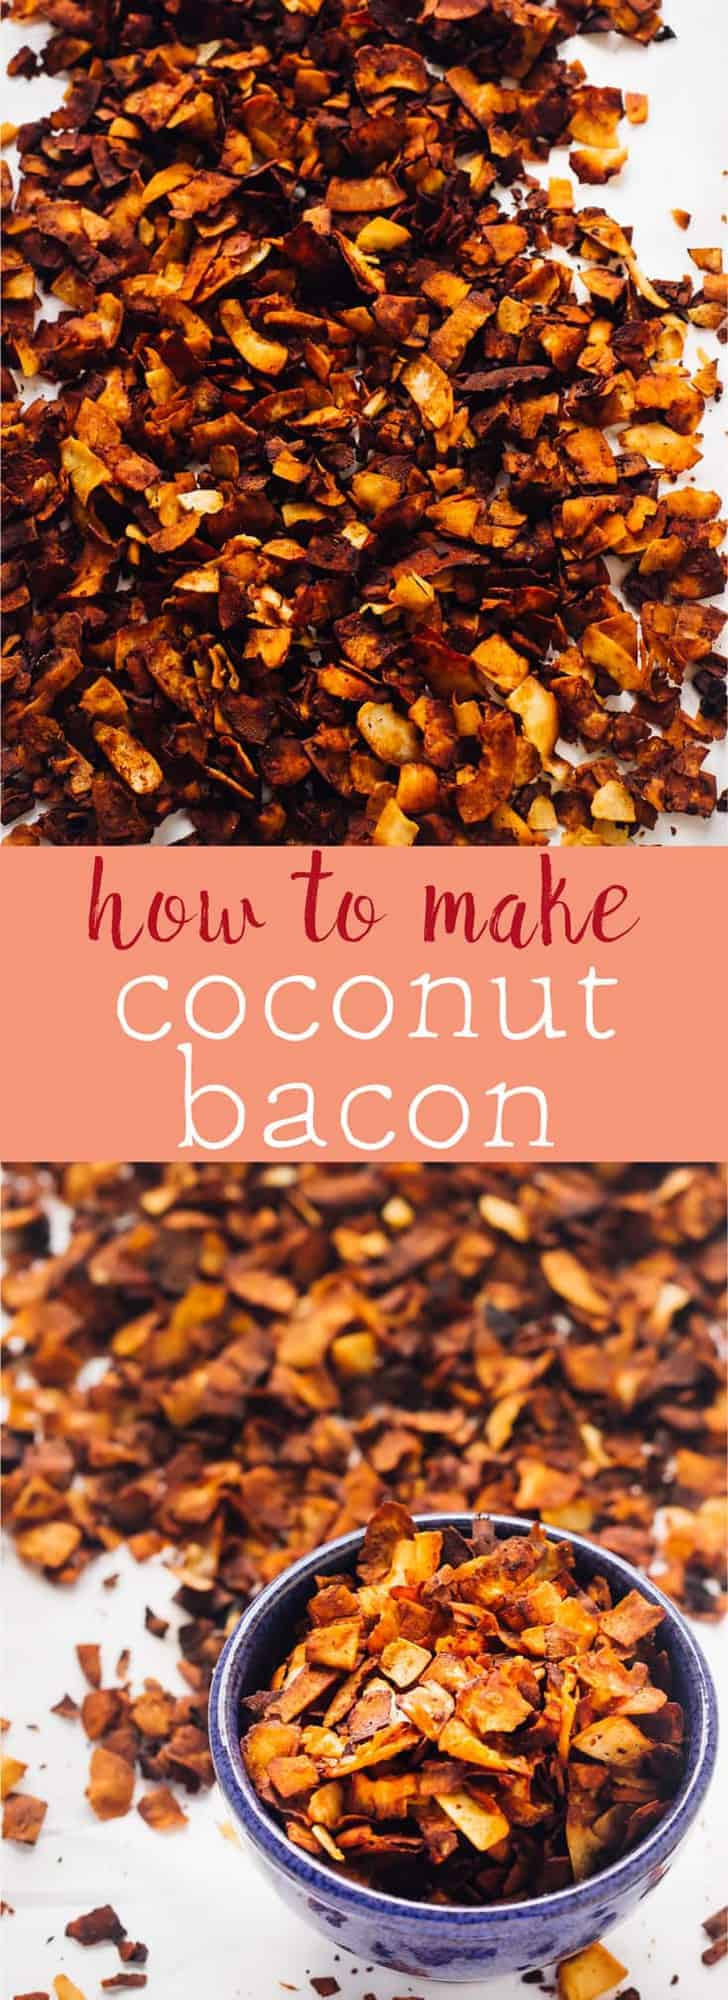 Learn how to make coconut bacon with just 4 ingredients in just 20 minutes! Great for topping your favourite dishes or even snacking on! via https://jessicainthekitchen.com